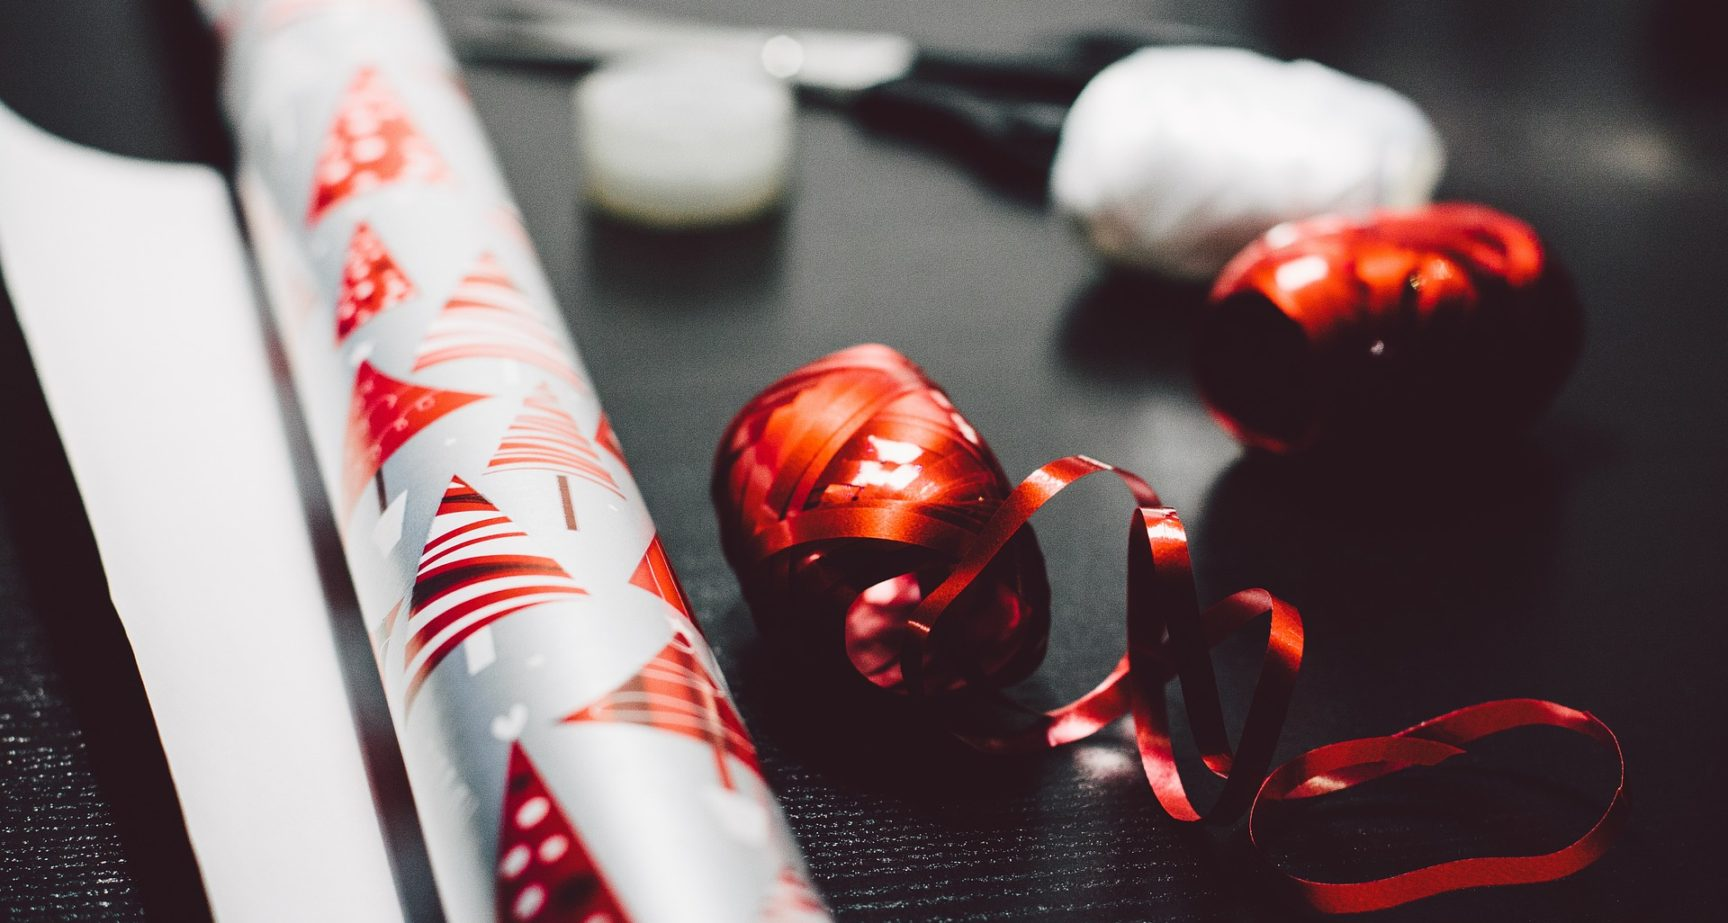 Organizing a Successful Office Christmas Party: Things to Keep in Mind